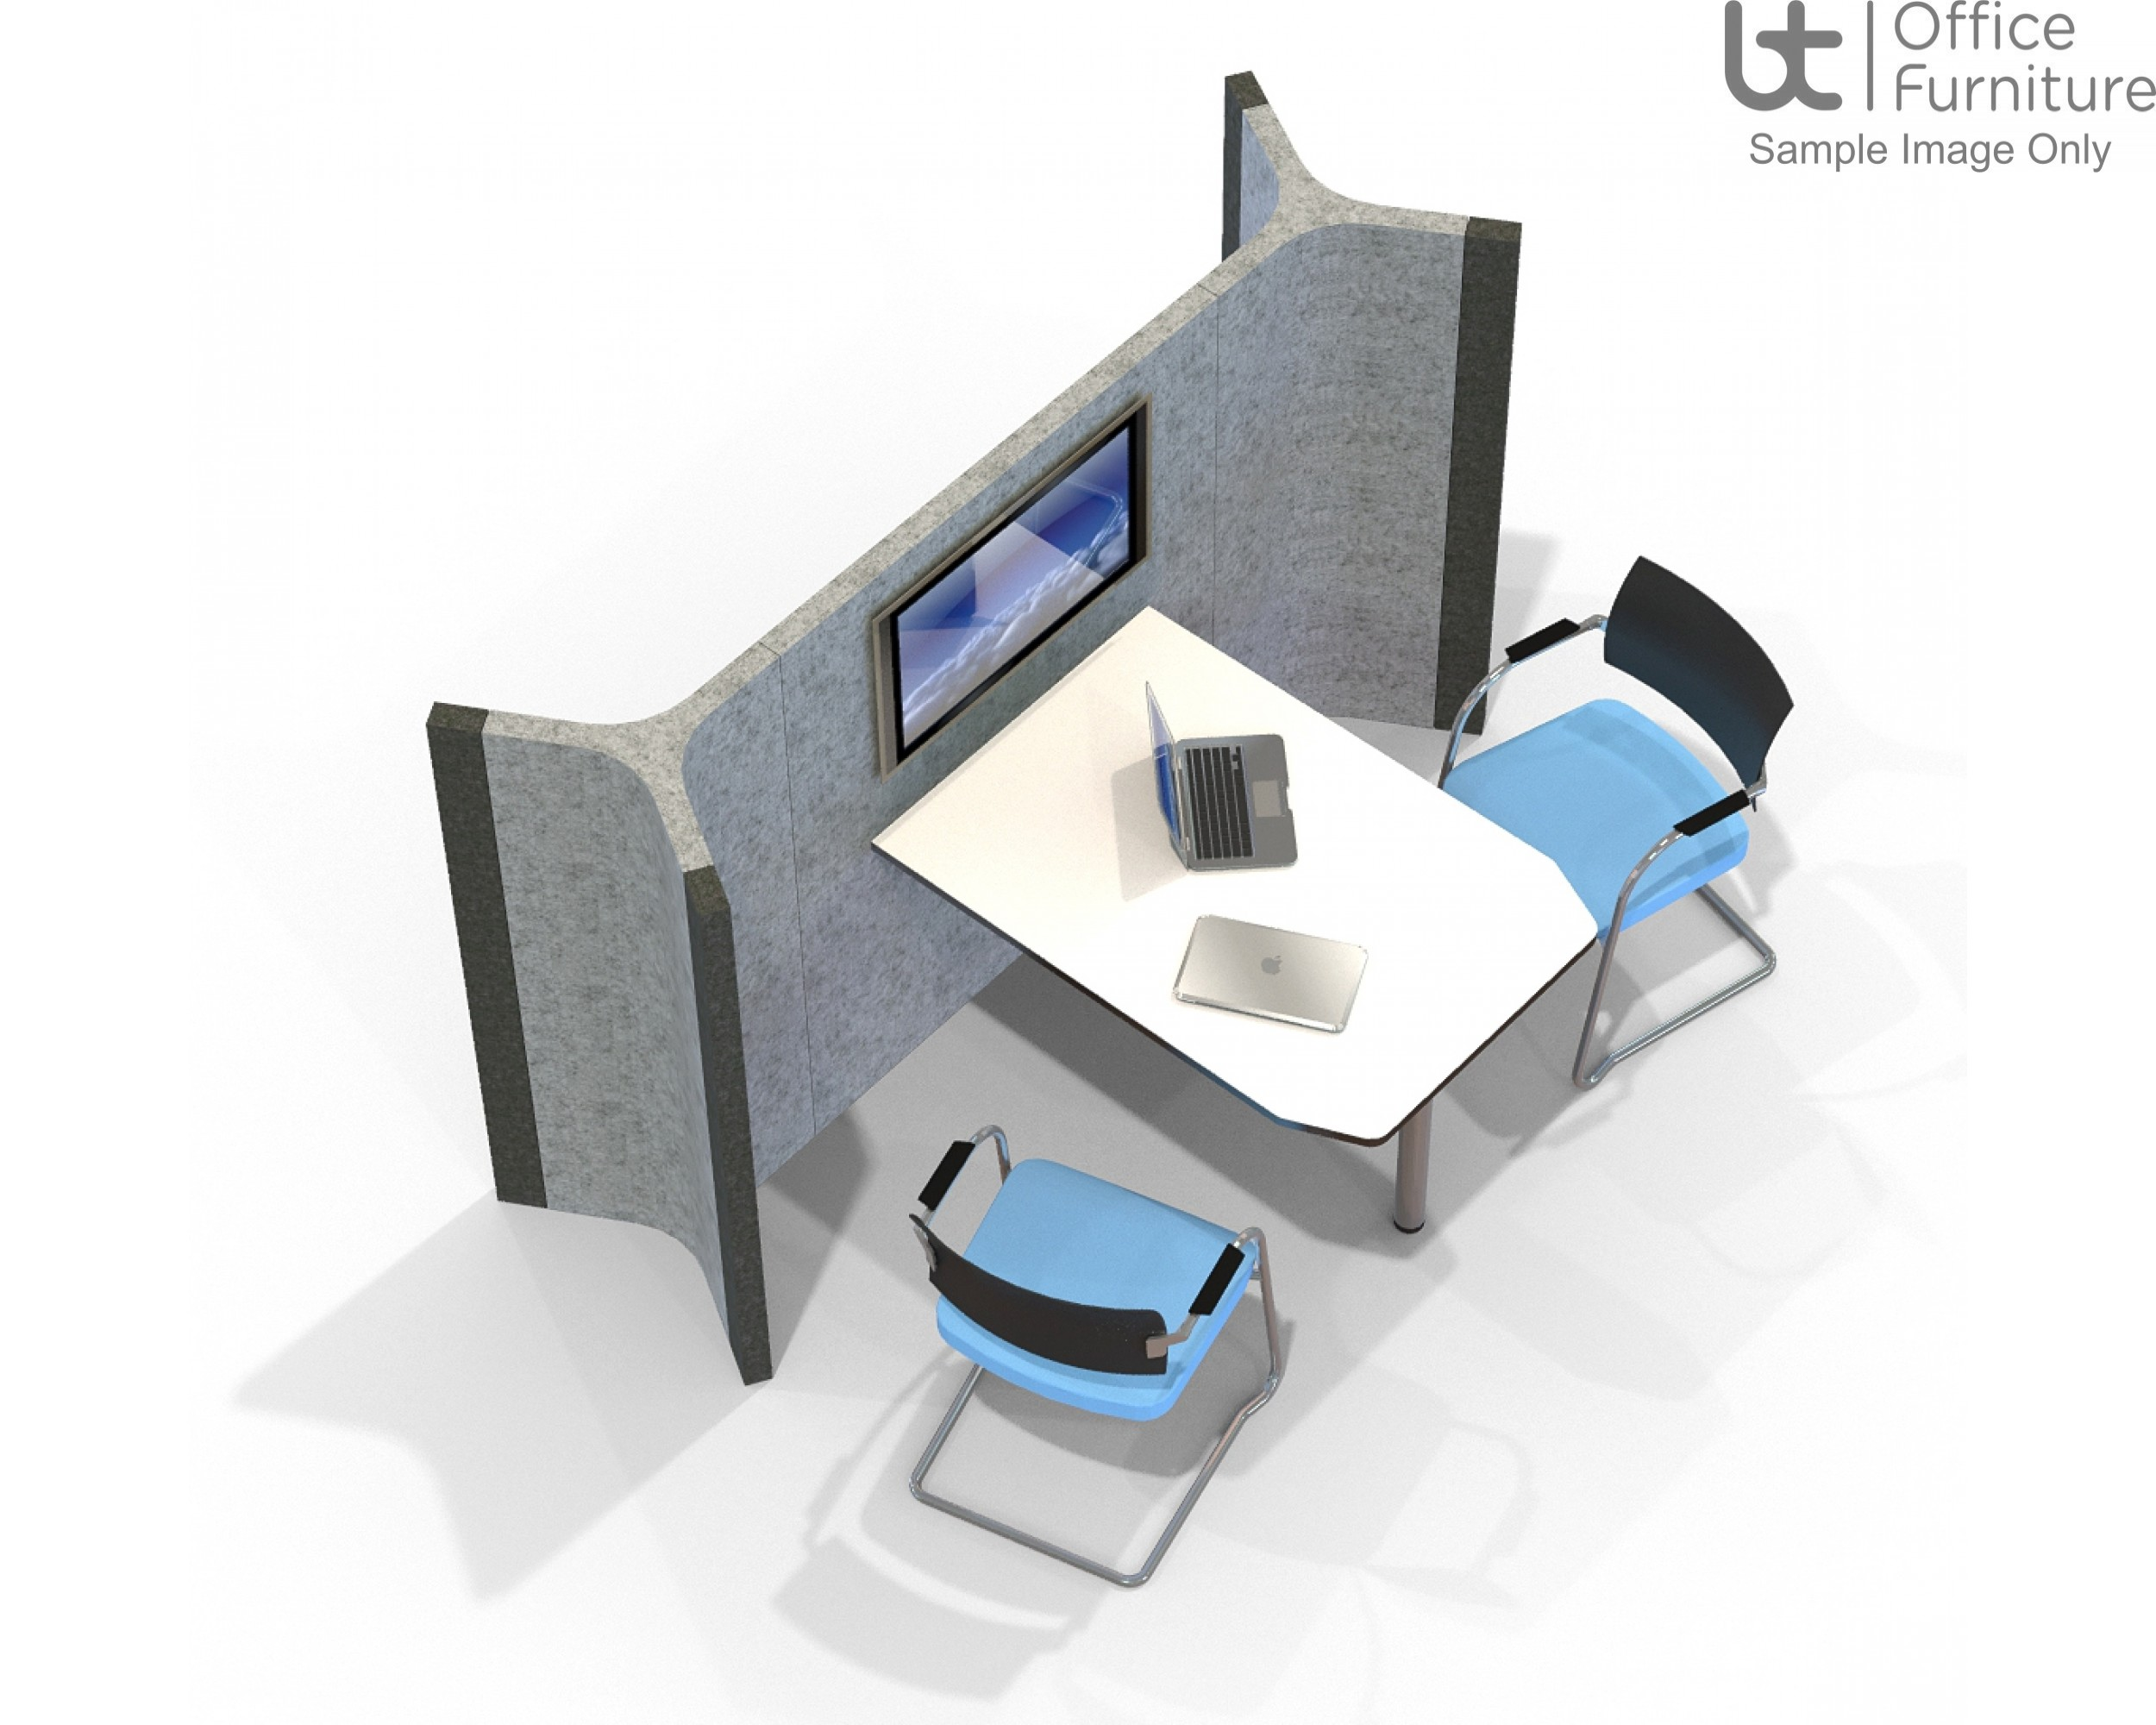 Acoustic Meeting - Media Wall Booth with 3 Panel Height Options & 3 Desk Width options